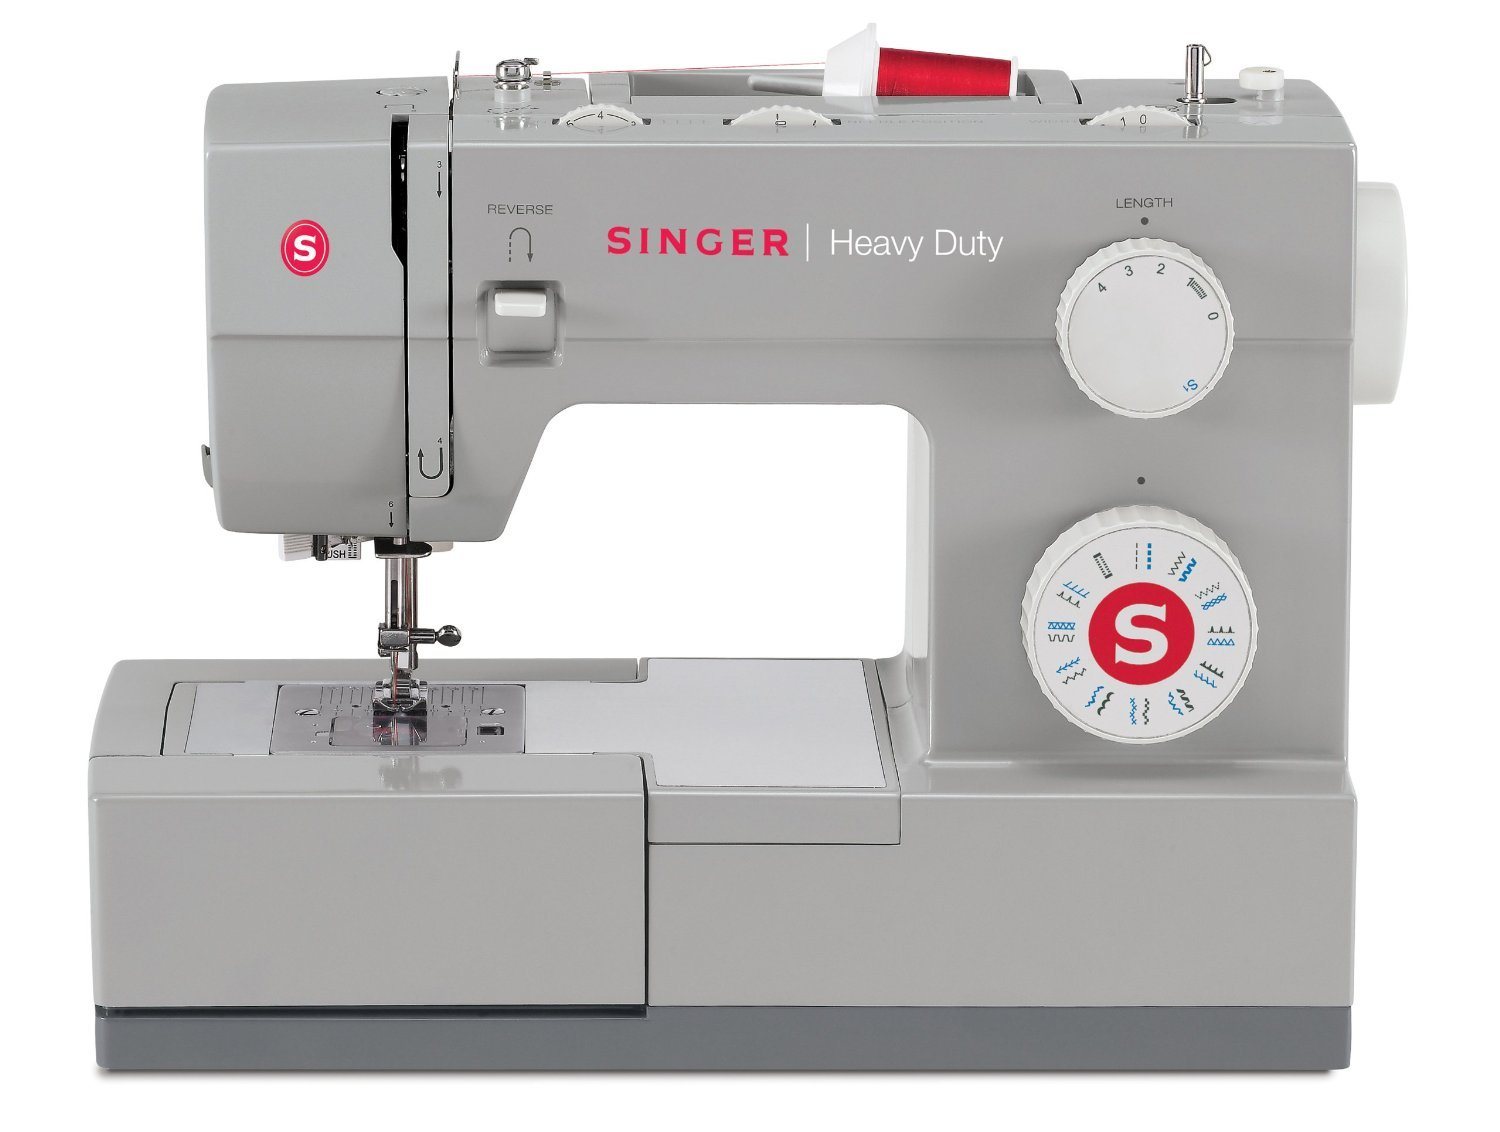 Top 9 Best Singer Sewing Machine Reviews in 2020 2